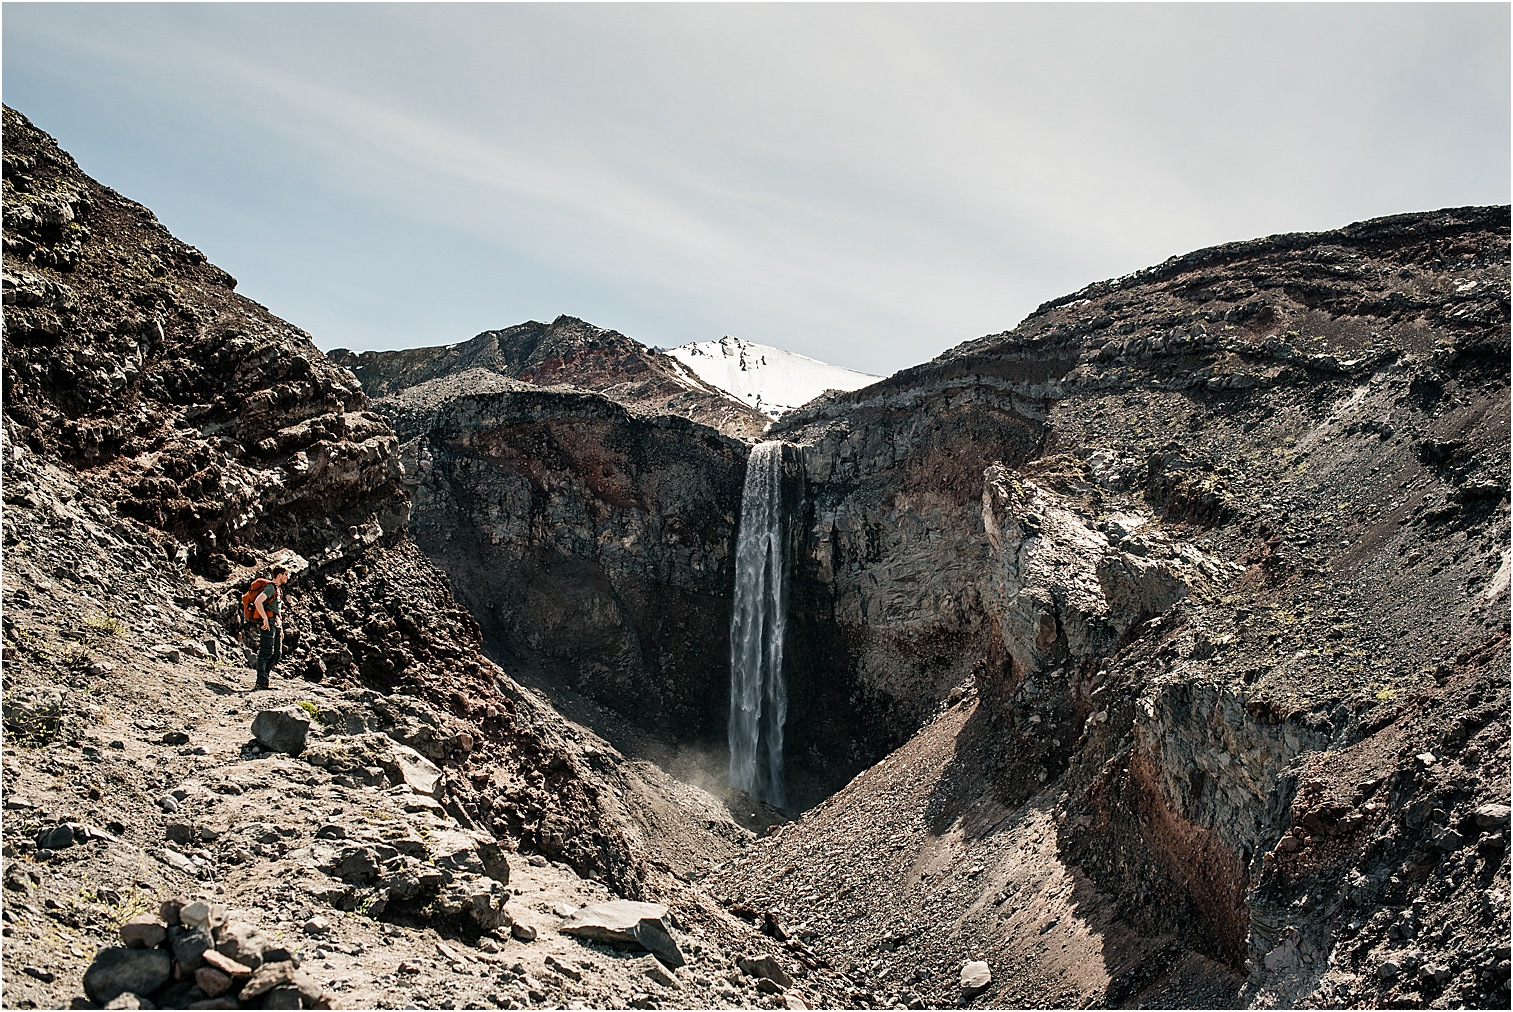 Large Waterfall in Mt St Helens. Image by Forthright Photo